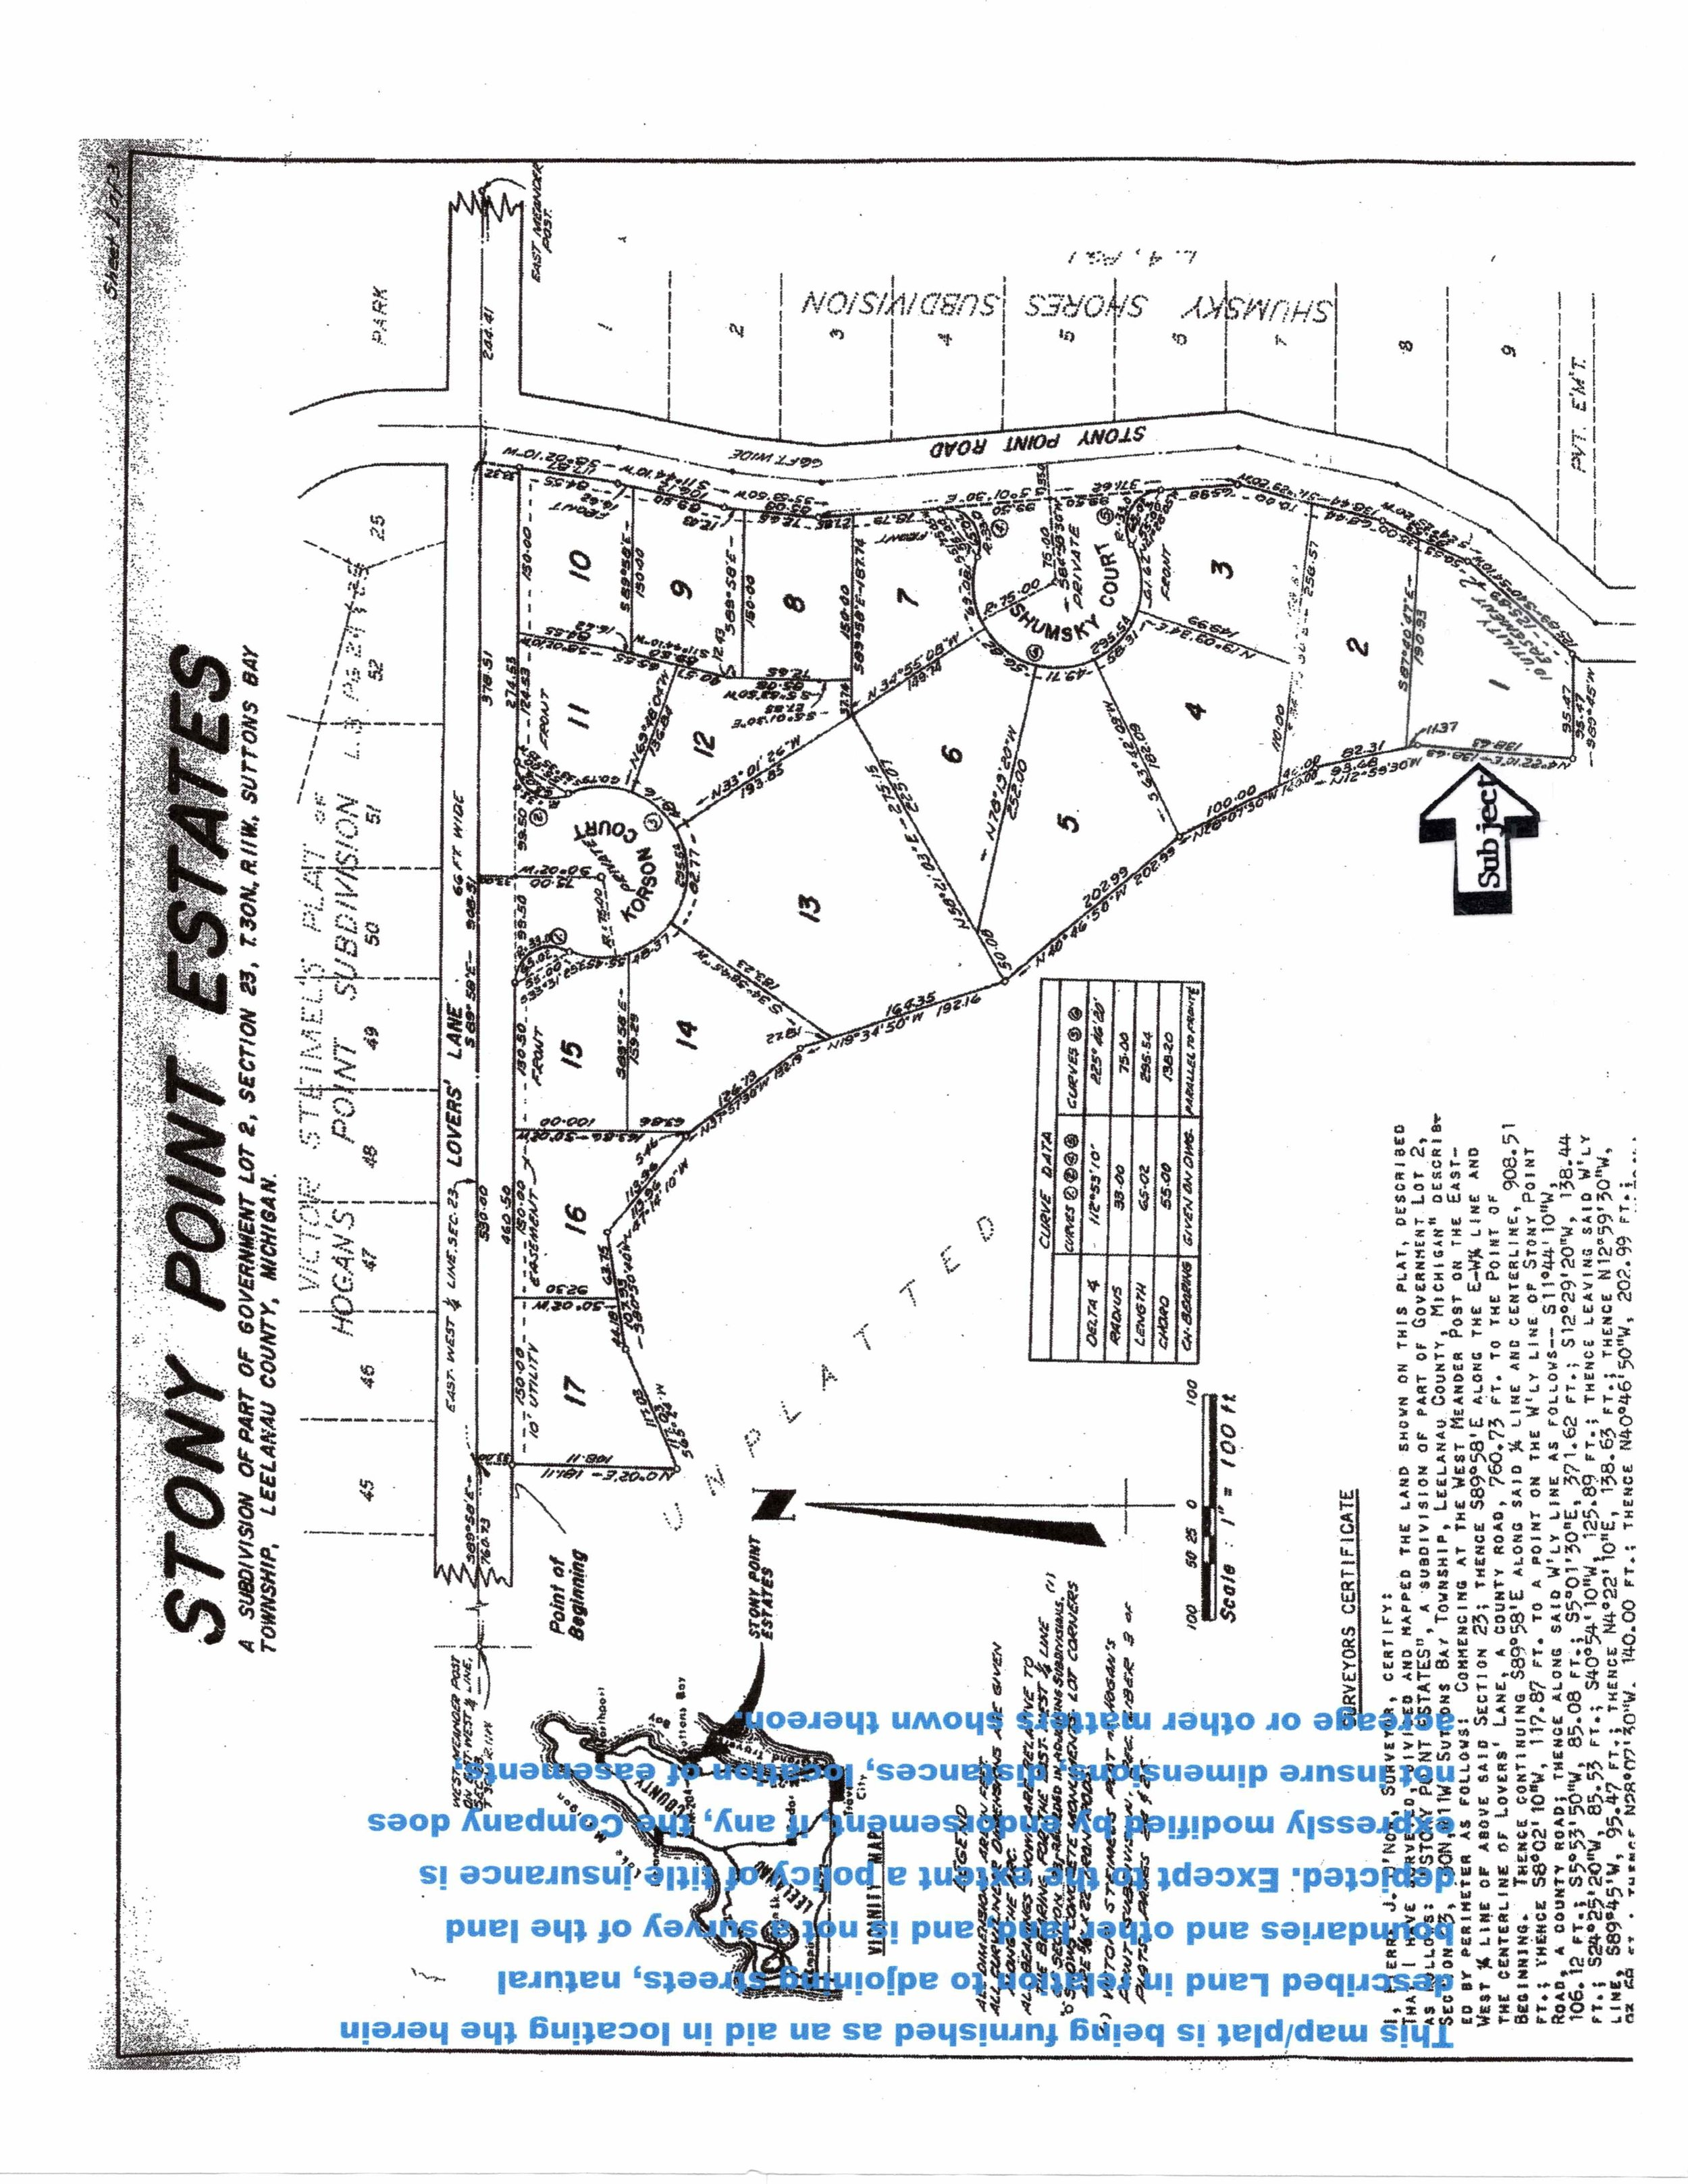 N Nanagosa Trail, Suttons Bay, MI - ~0.48 Acre Vacant Parcel on Stony Point near Water Access - Marketing Packet (2).jpg